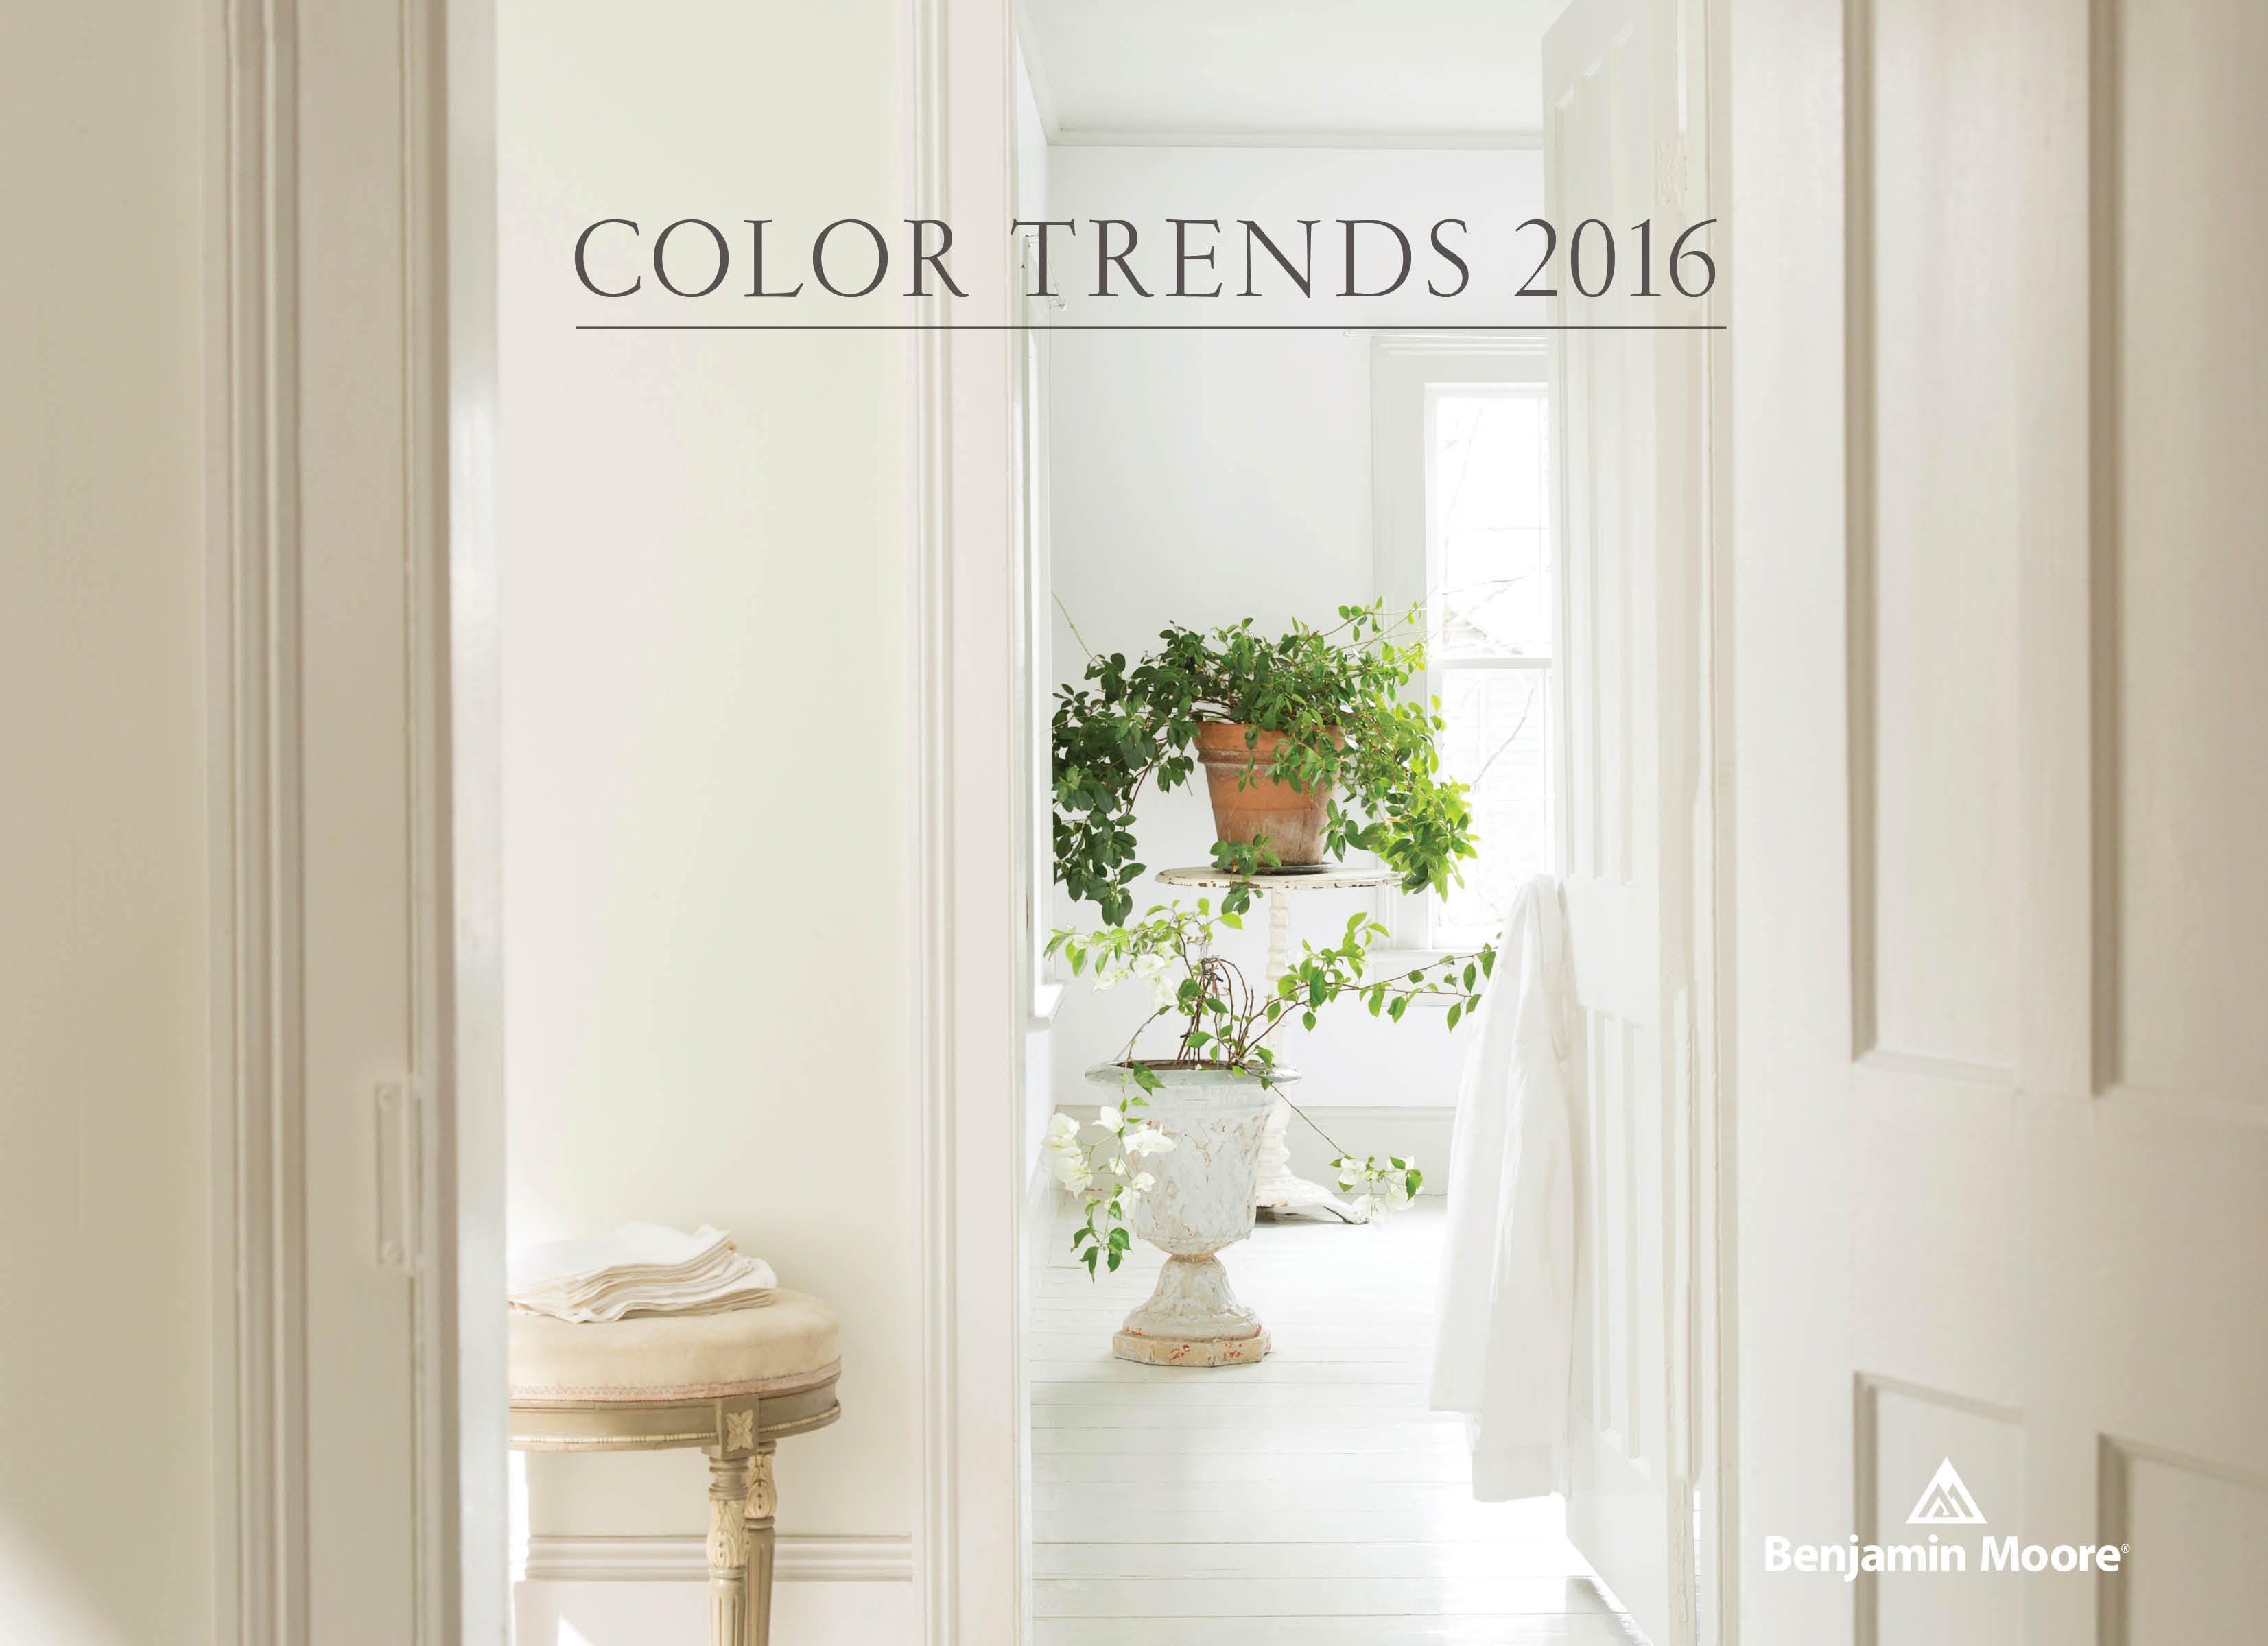 Benjamin Moore Names Simply White Its 2016 Color of the Year | Business  Wire